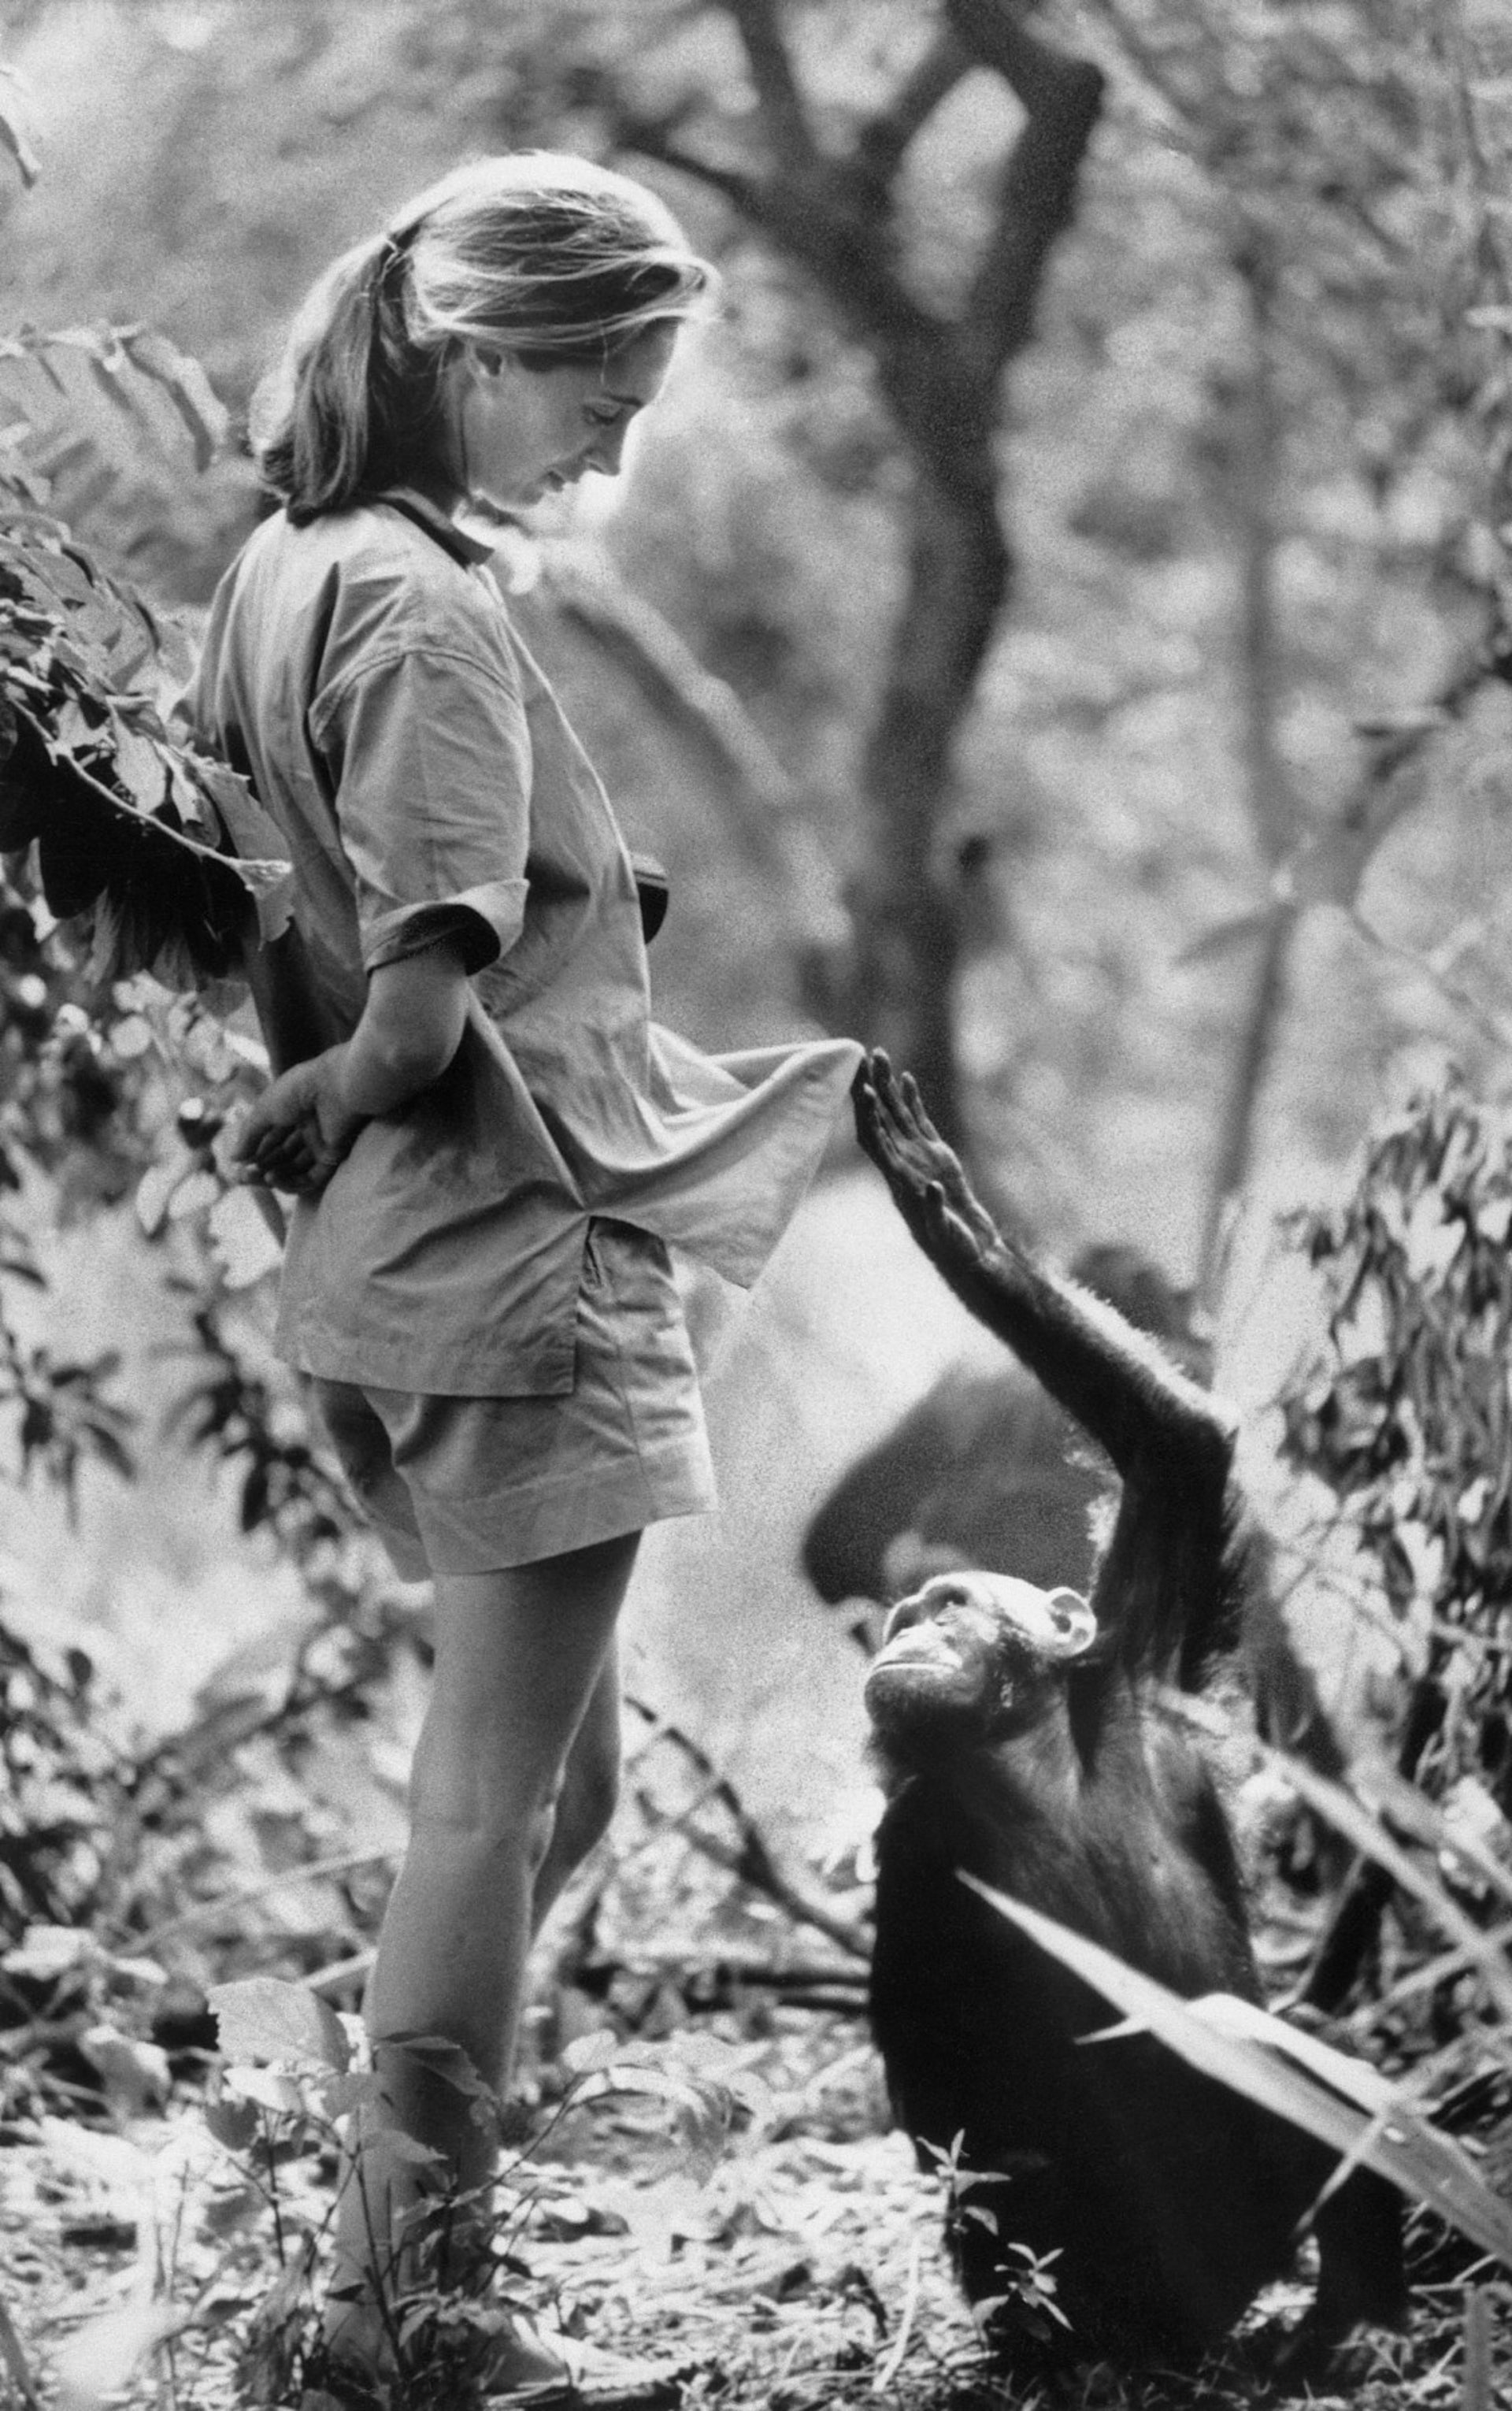 Jane Goodall with one of her research subjects in the Gombe National Park in northern Tanzania, in 1972.